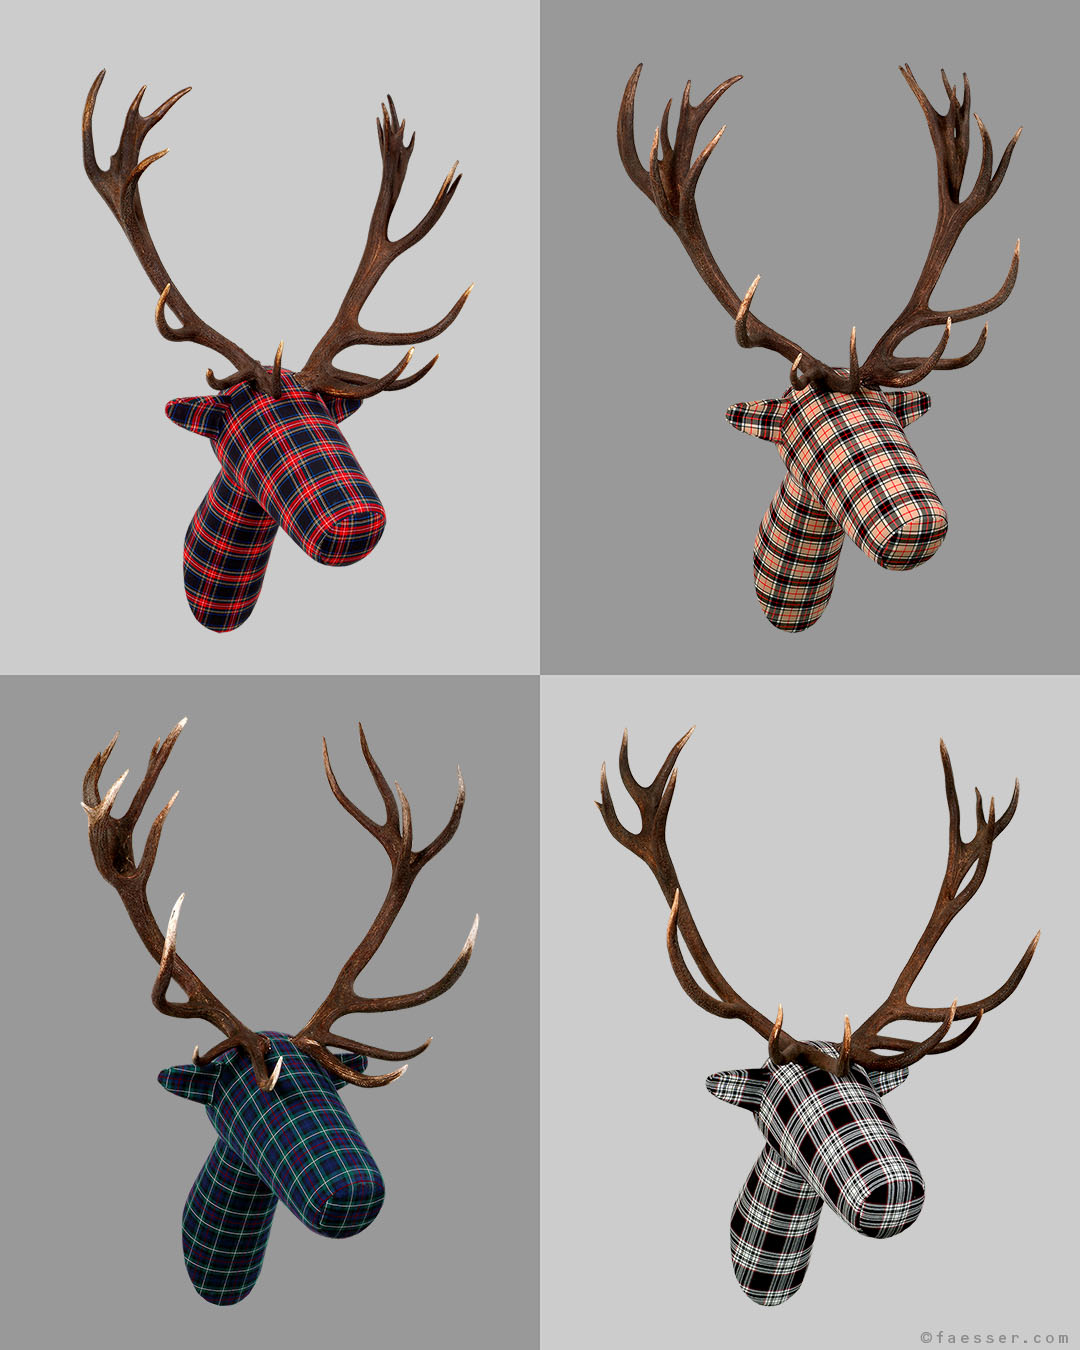 KARO 4/10: Abstract comic figures as tartan trophies with real antlers, Roland Faesser 2004